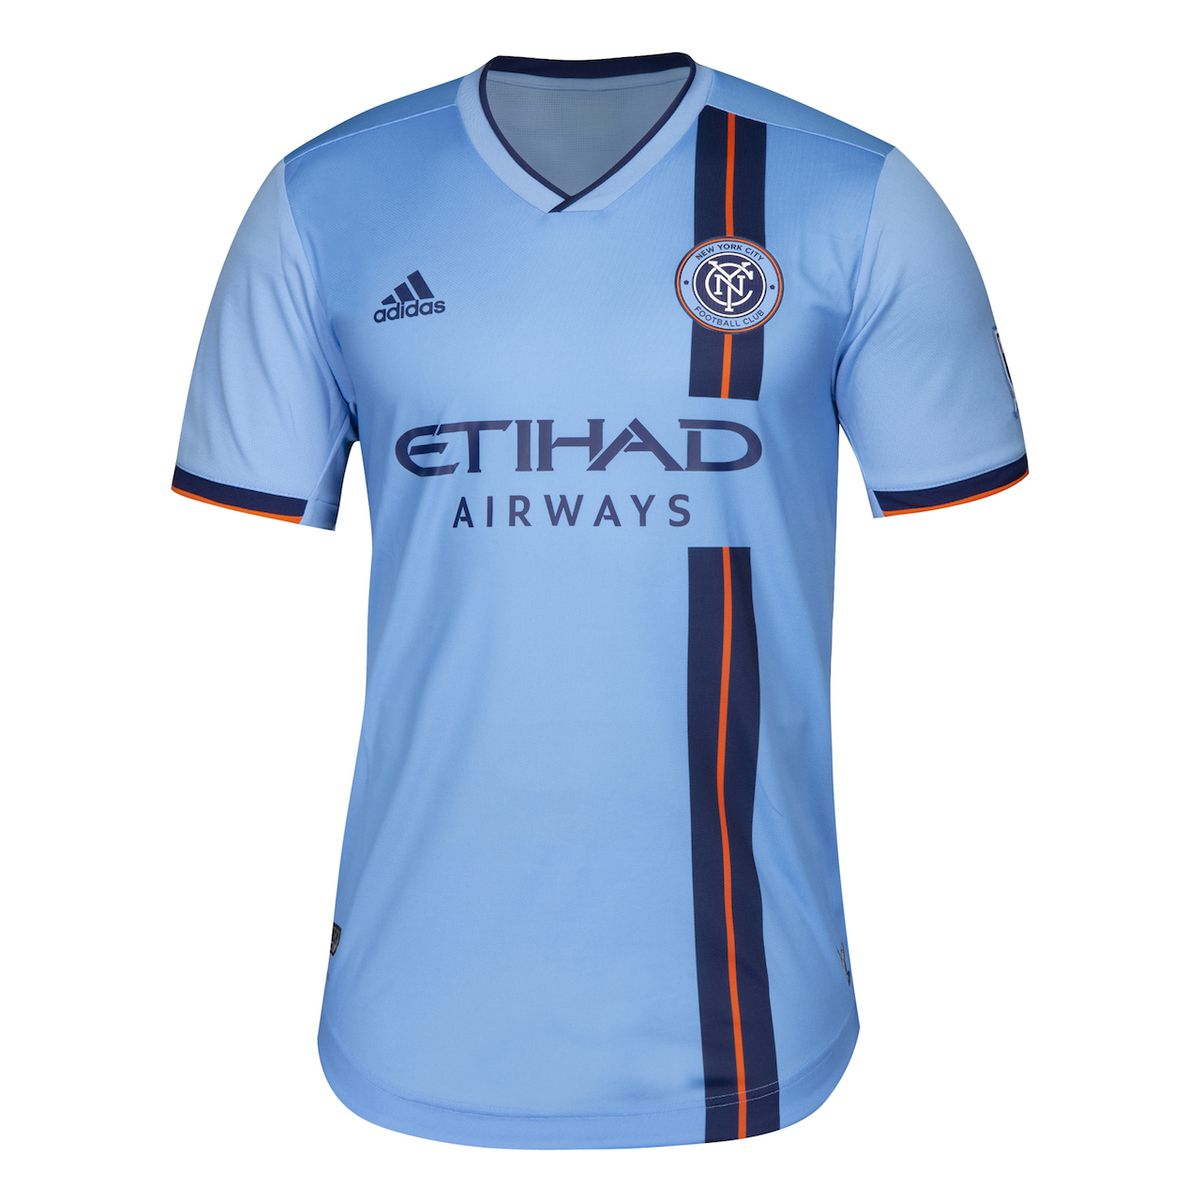 The 2019 New York City FC home jersey — mostly sky blue with a navy blue & orange vertical stripe running down the left-front of the jersey